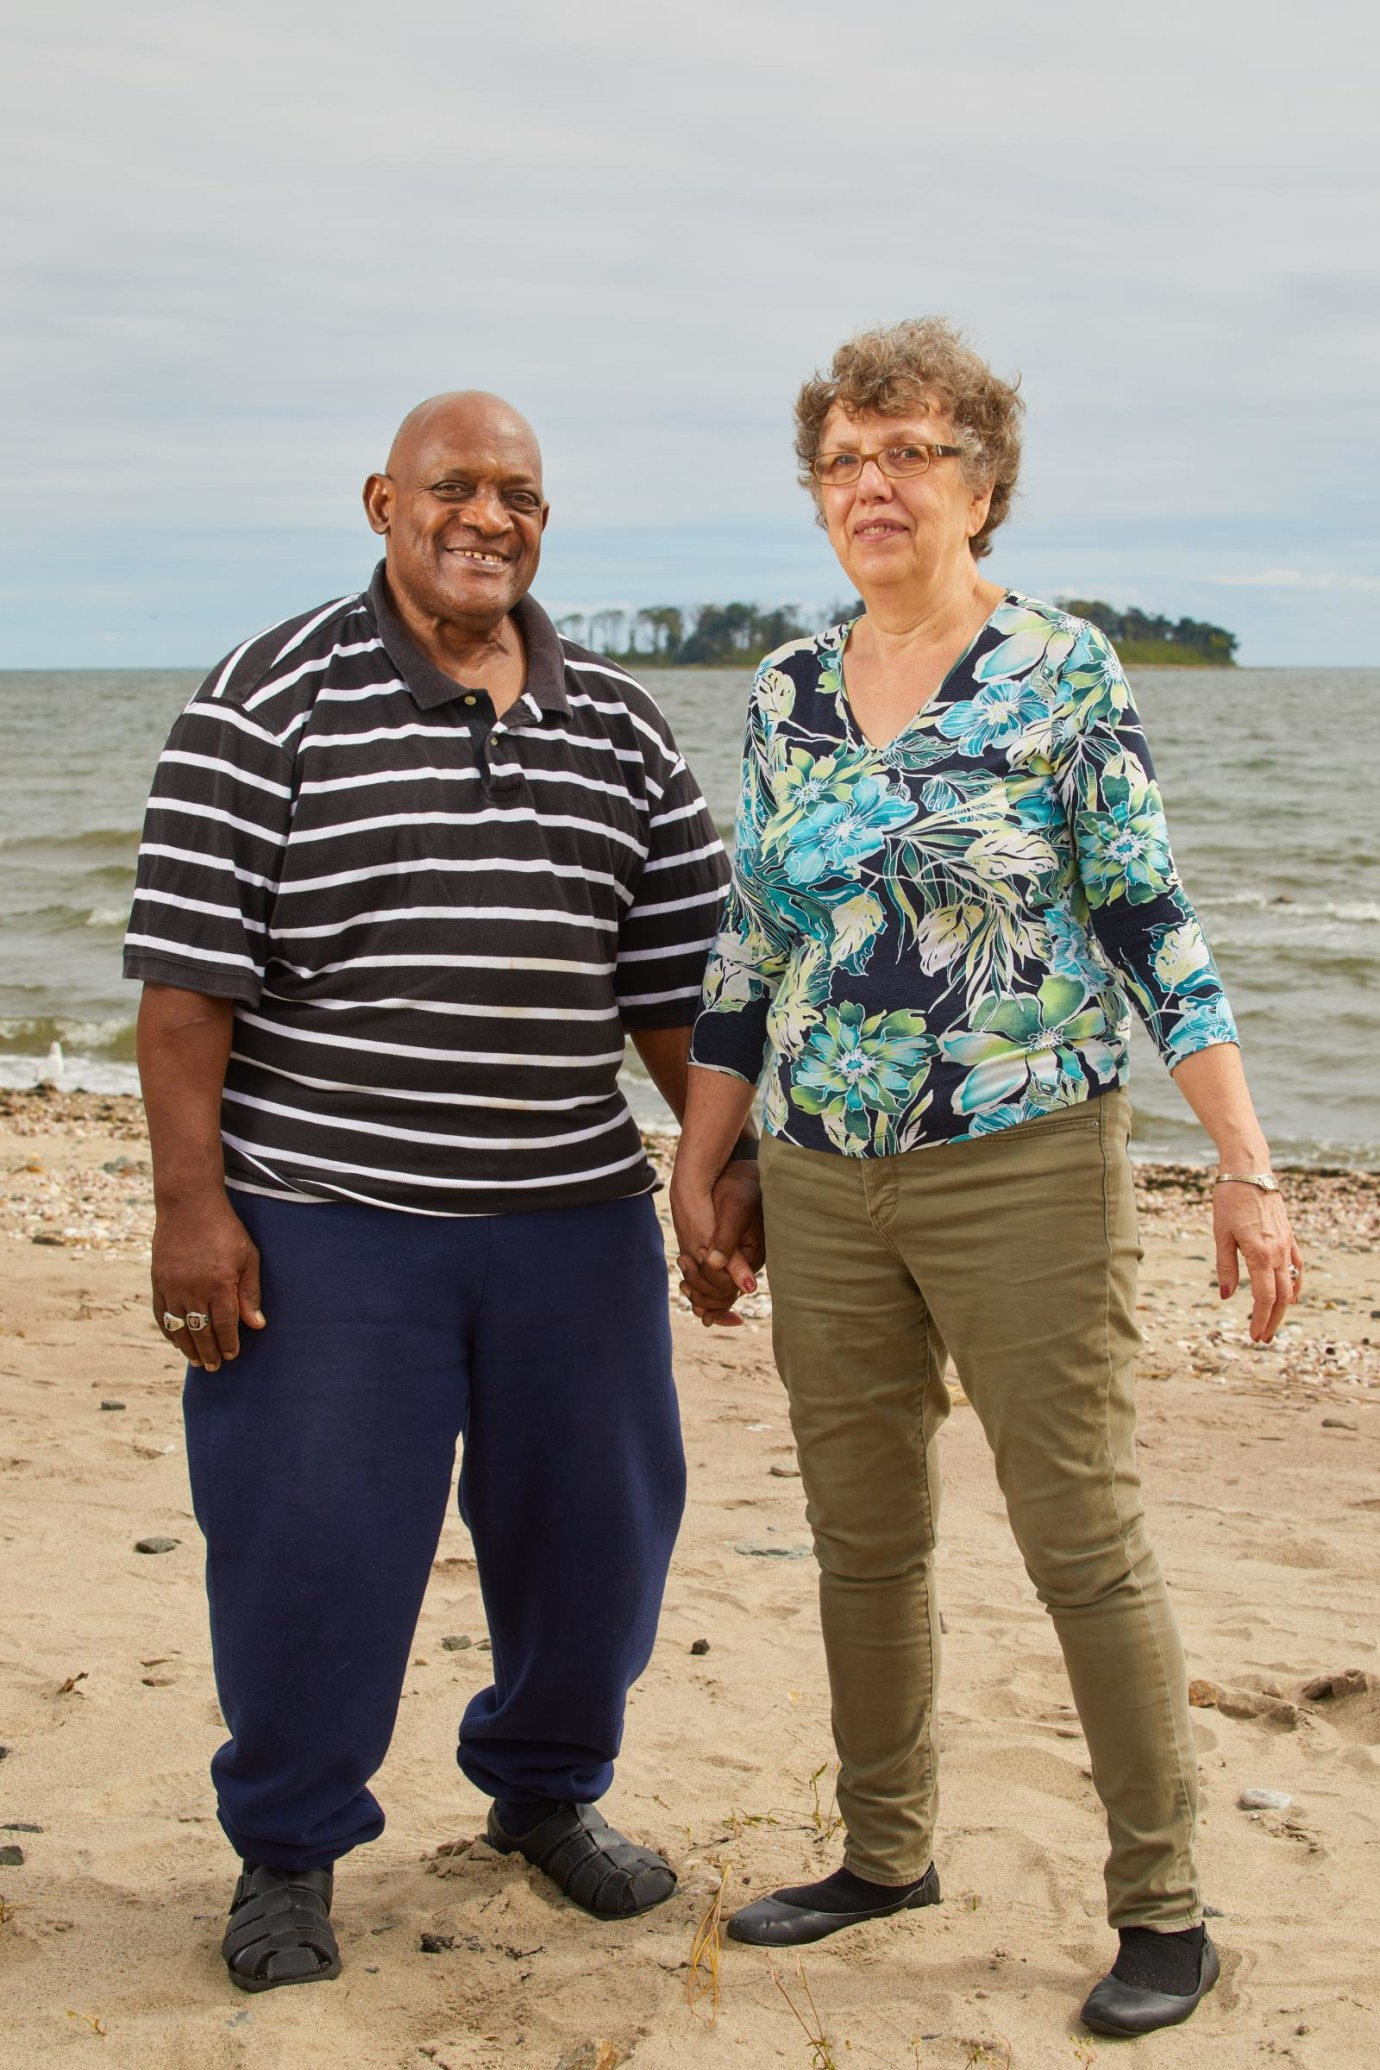 Help us Discover Heroes Frank and Lynn enjoy practicing mindfulness with some yoga on the beach